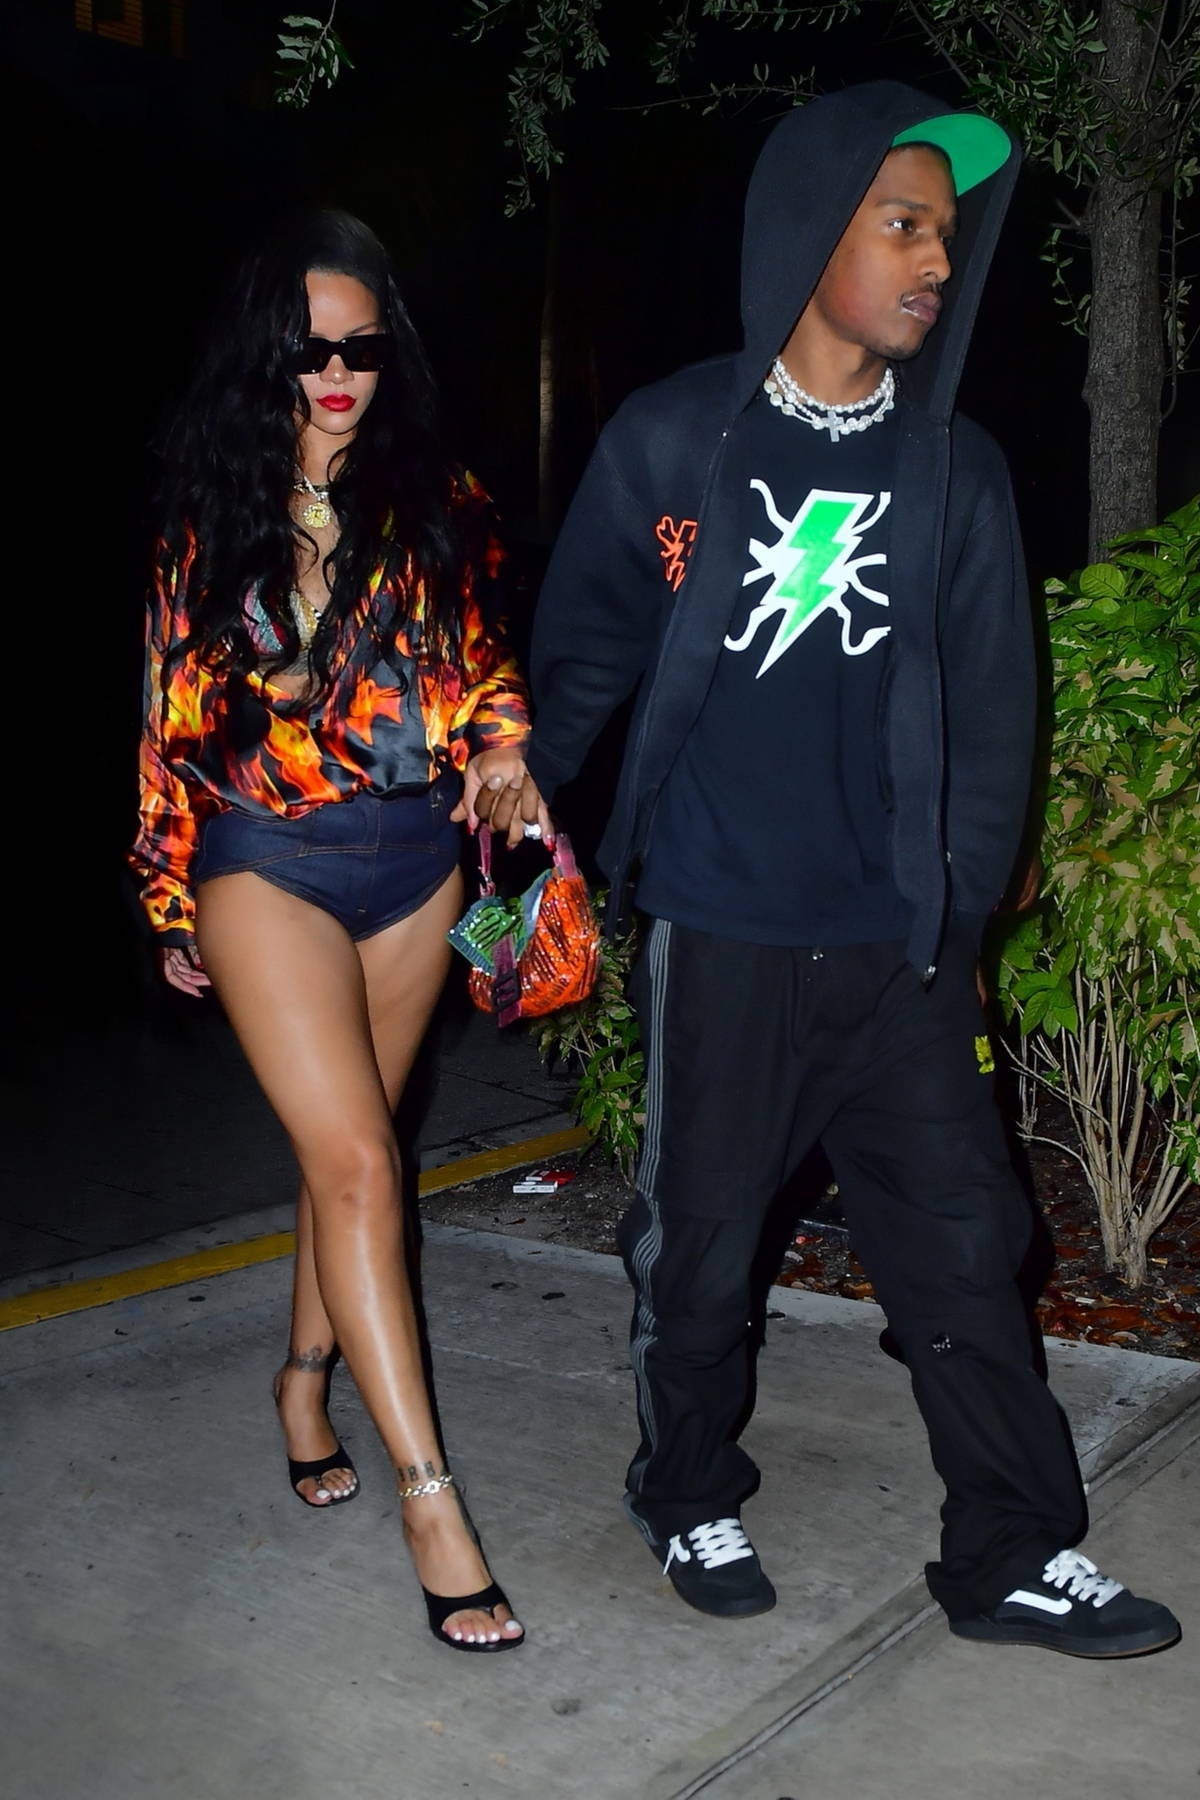 Rihanna and A$AP Rocky go hand in hand during a date night in Miami, Florida